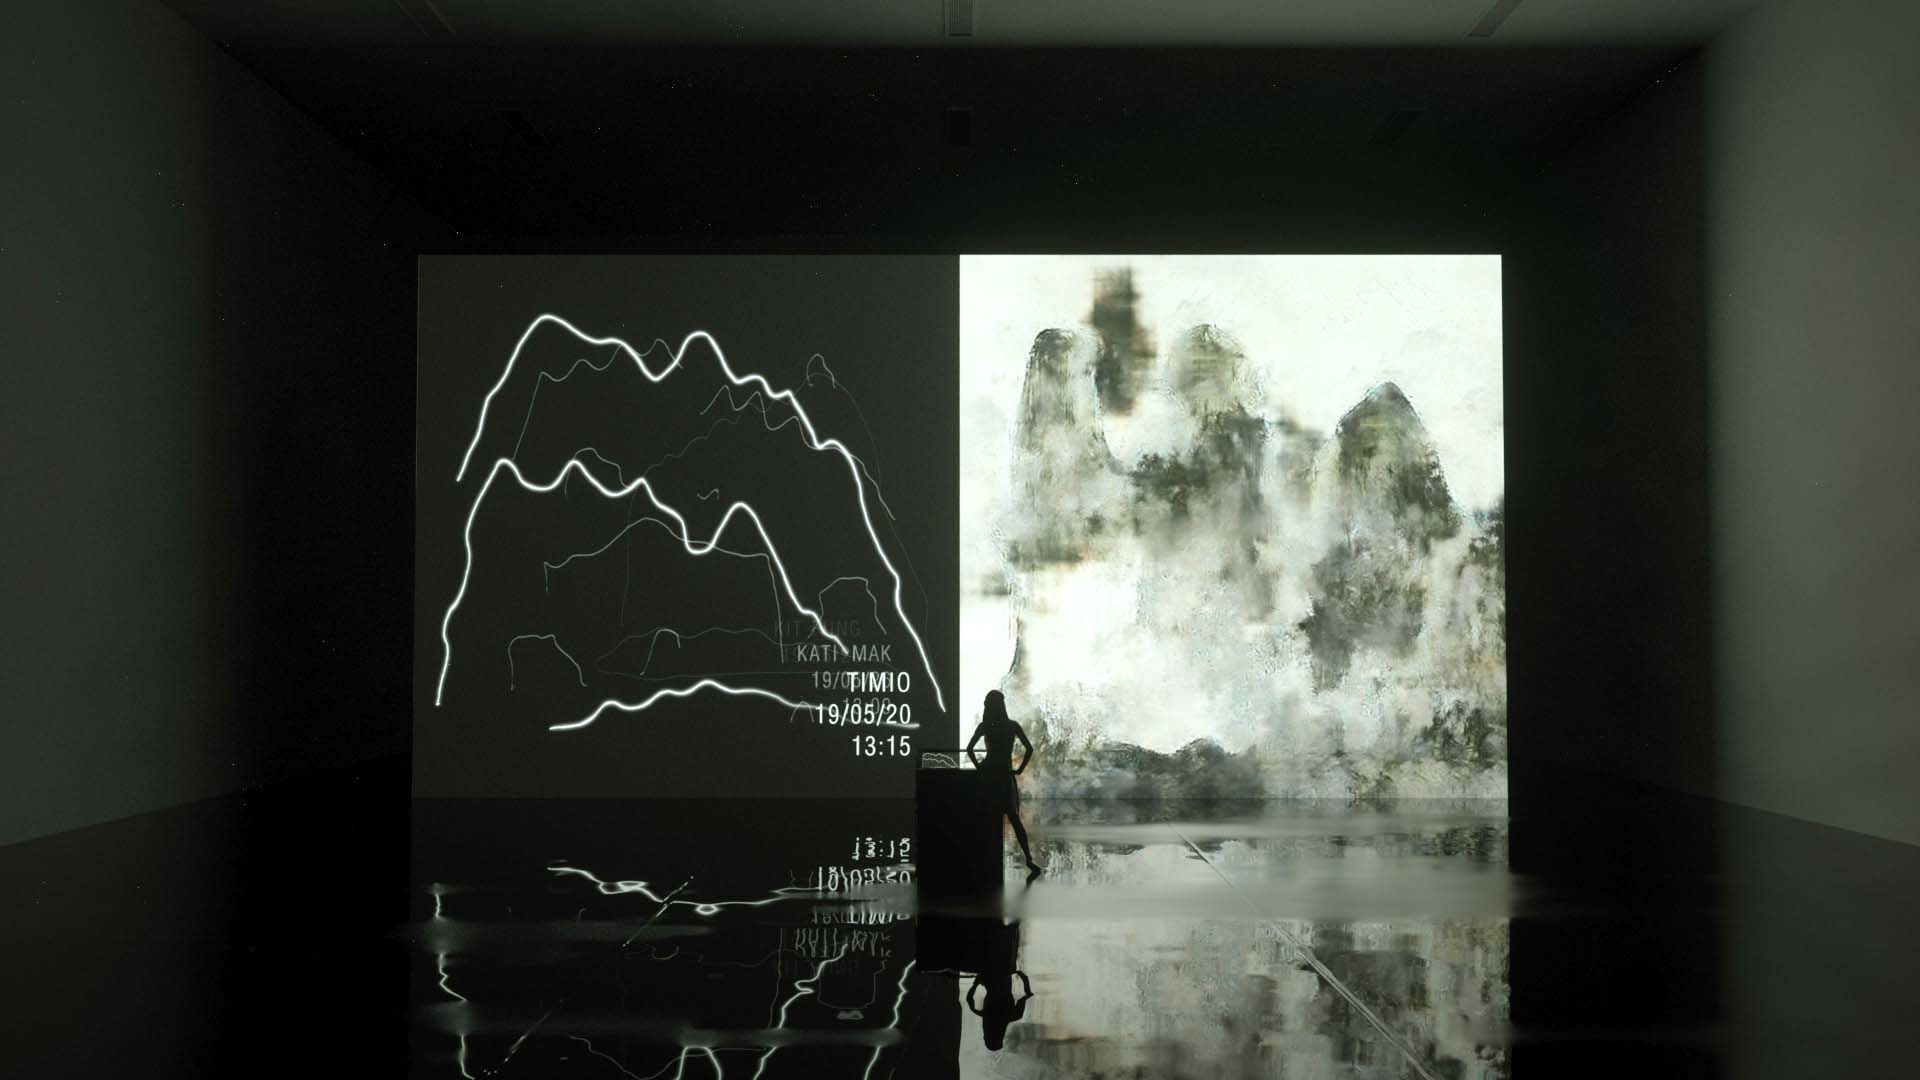 Dino Fung, XRT, Mountain & Water, 2019, Projection, 8000cm x 4000cm